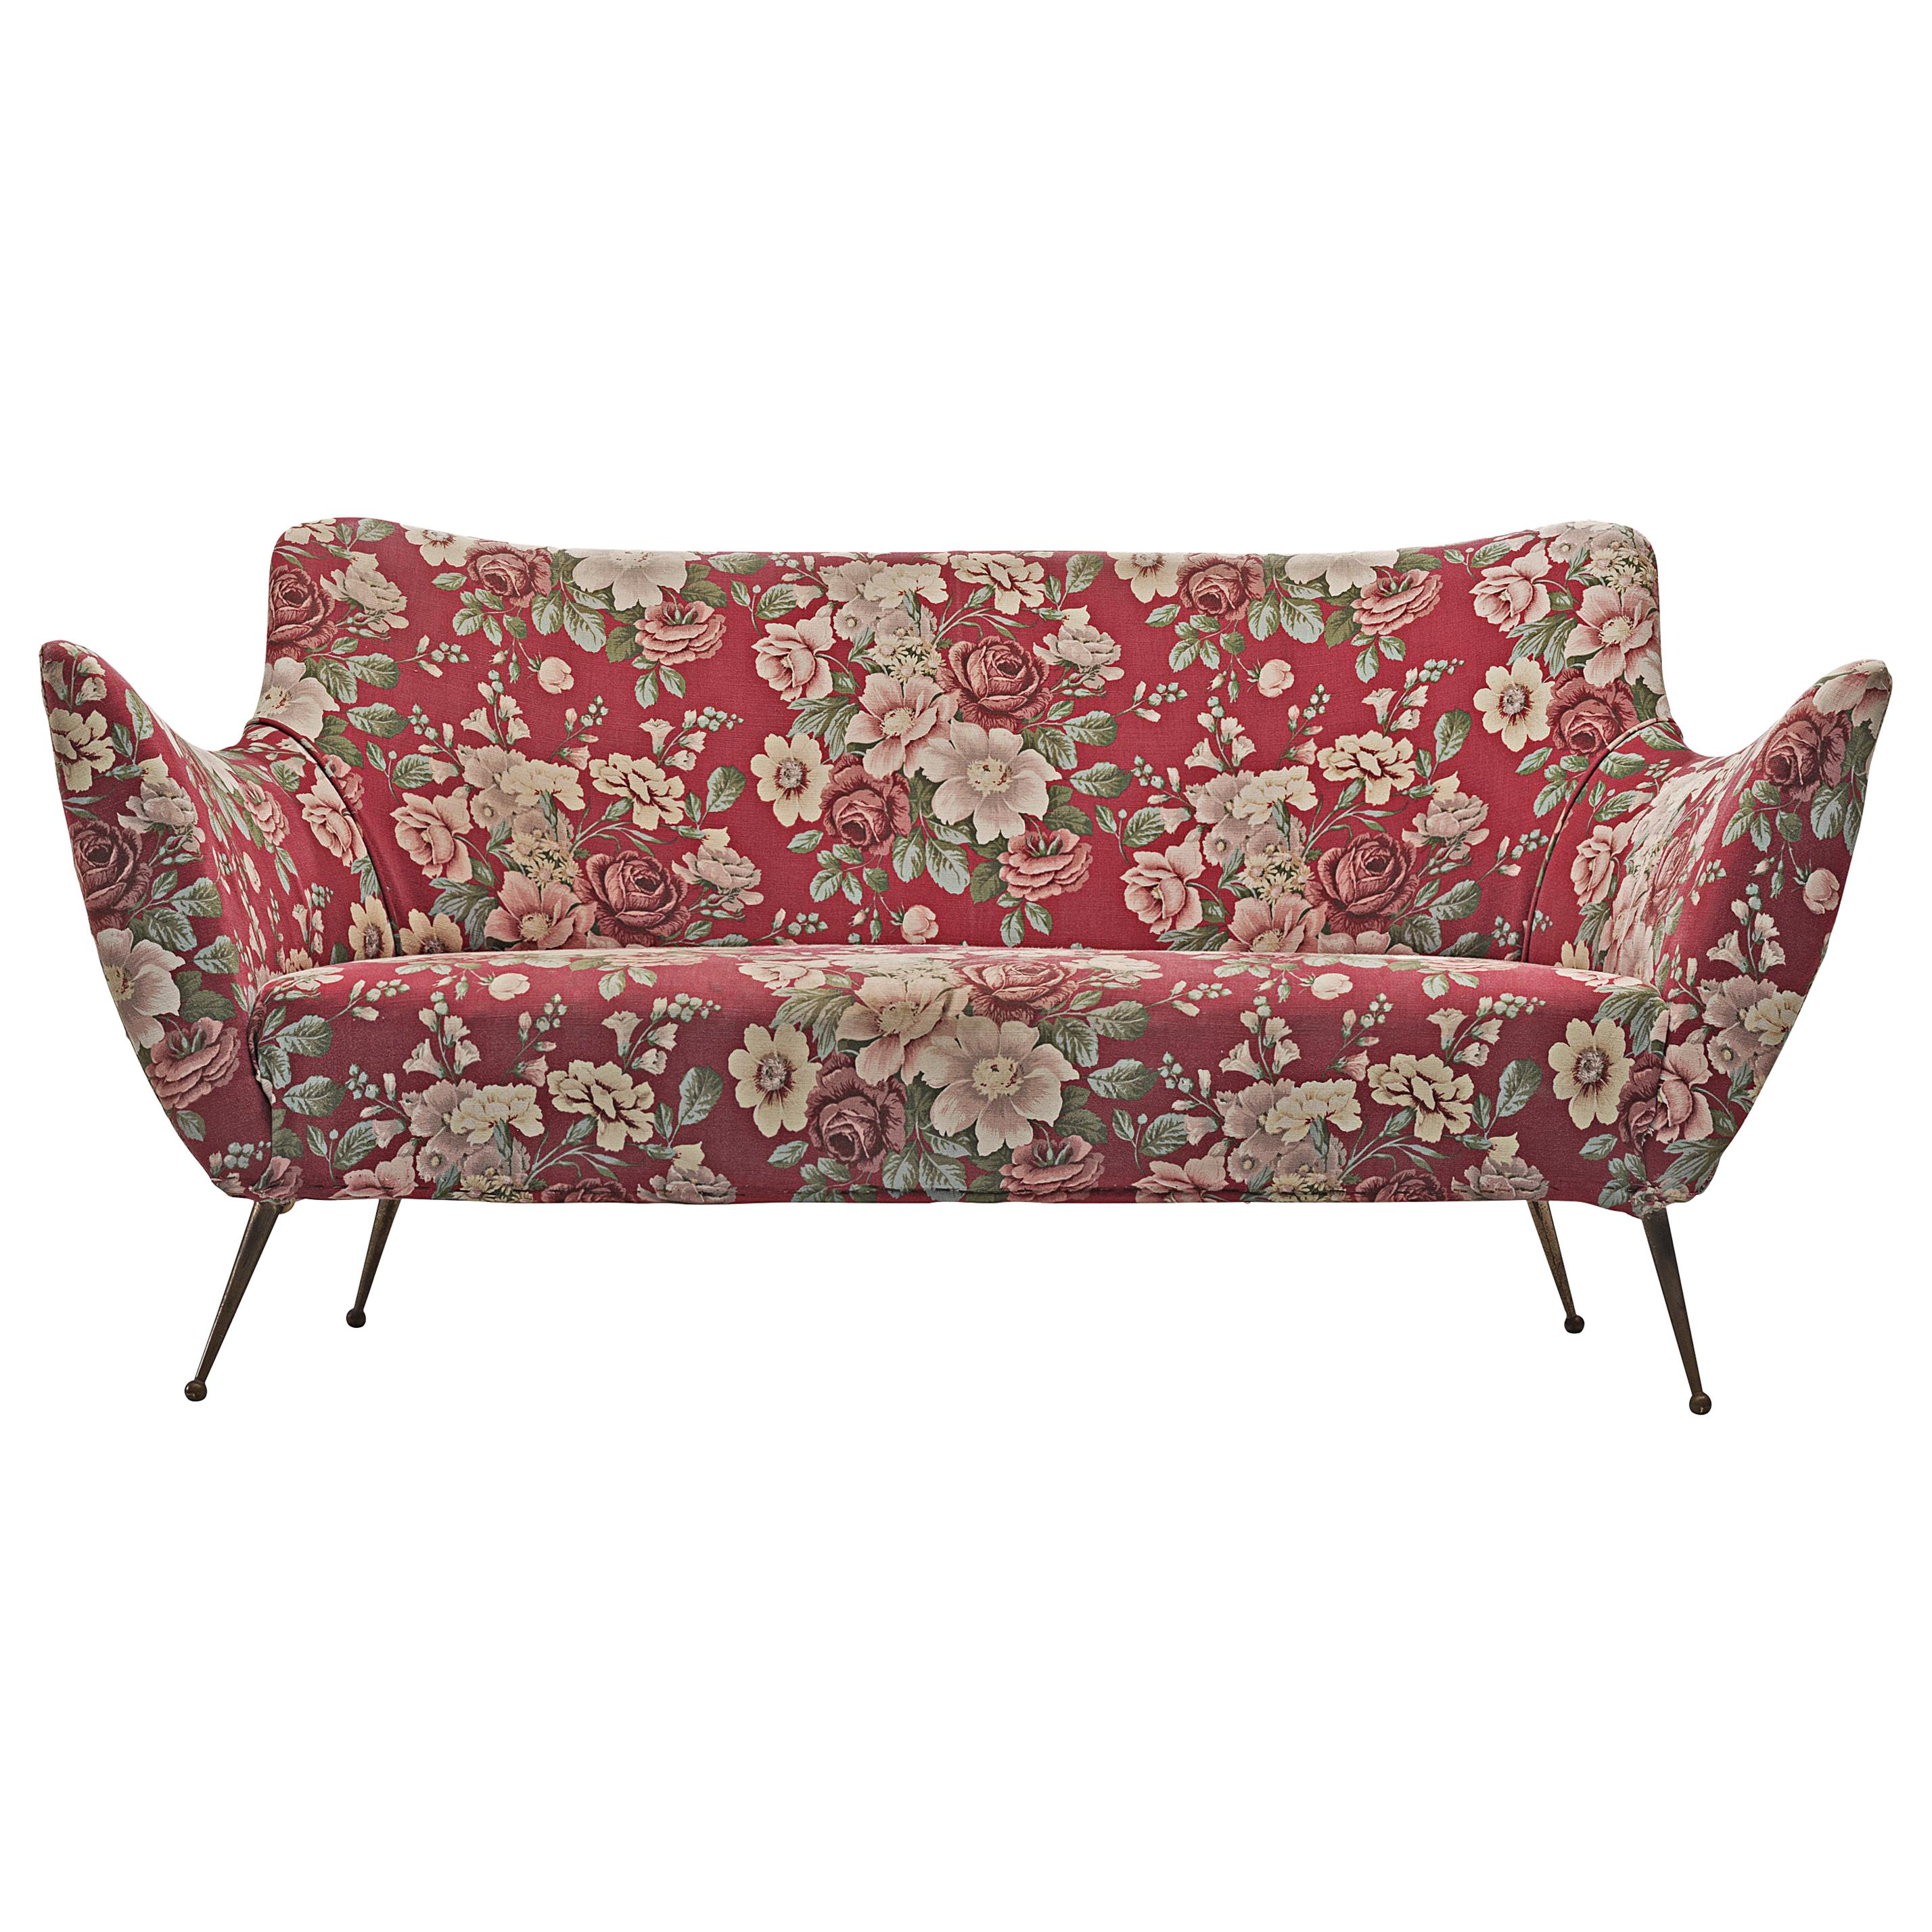 ISA Bergamo Sofa in Red Floral Fabric